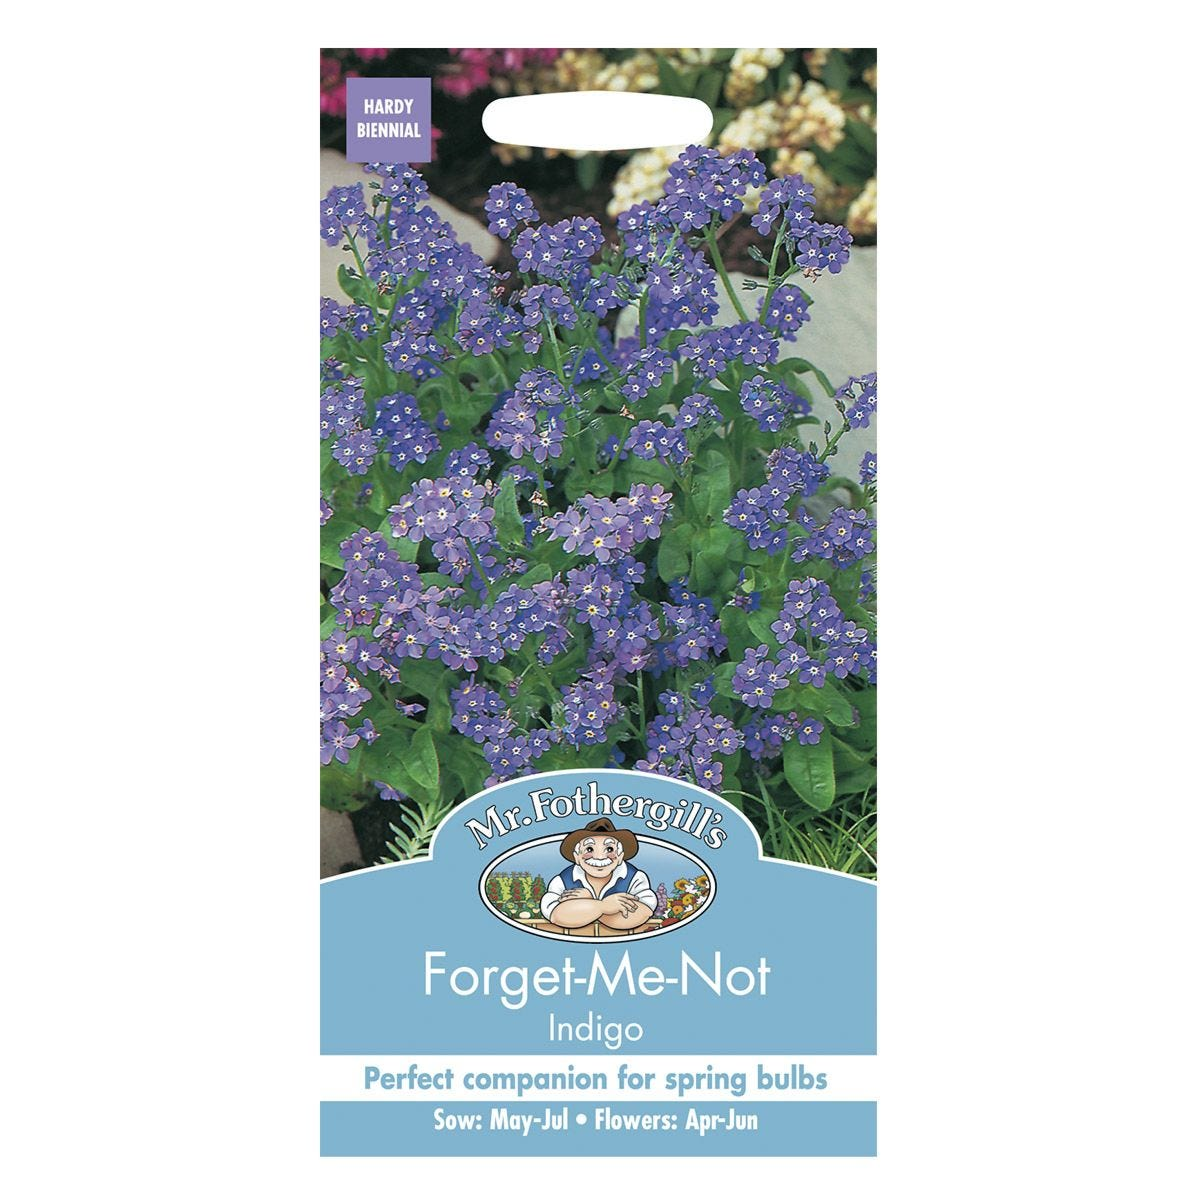 Mr Fothergill's Forget Me Not Indigo Seeds